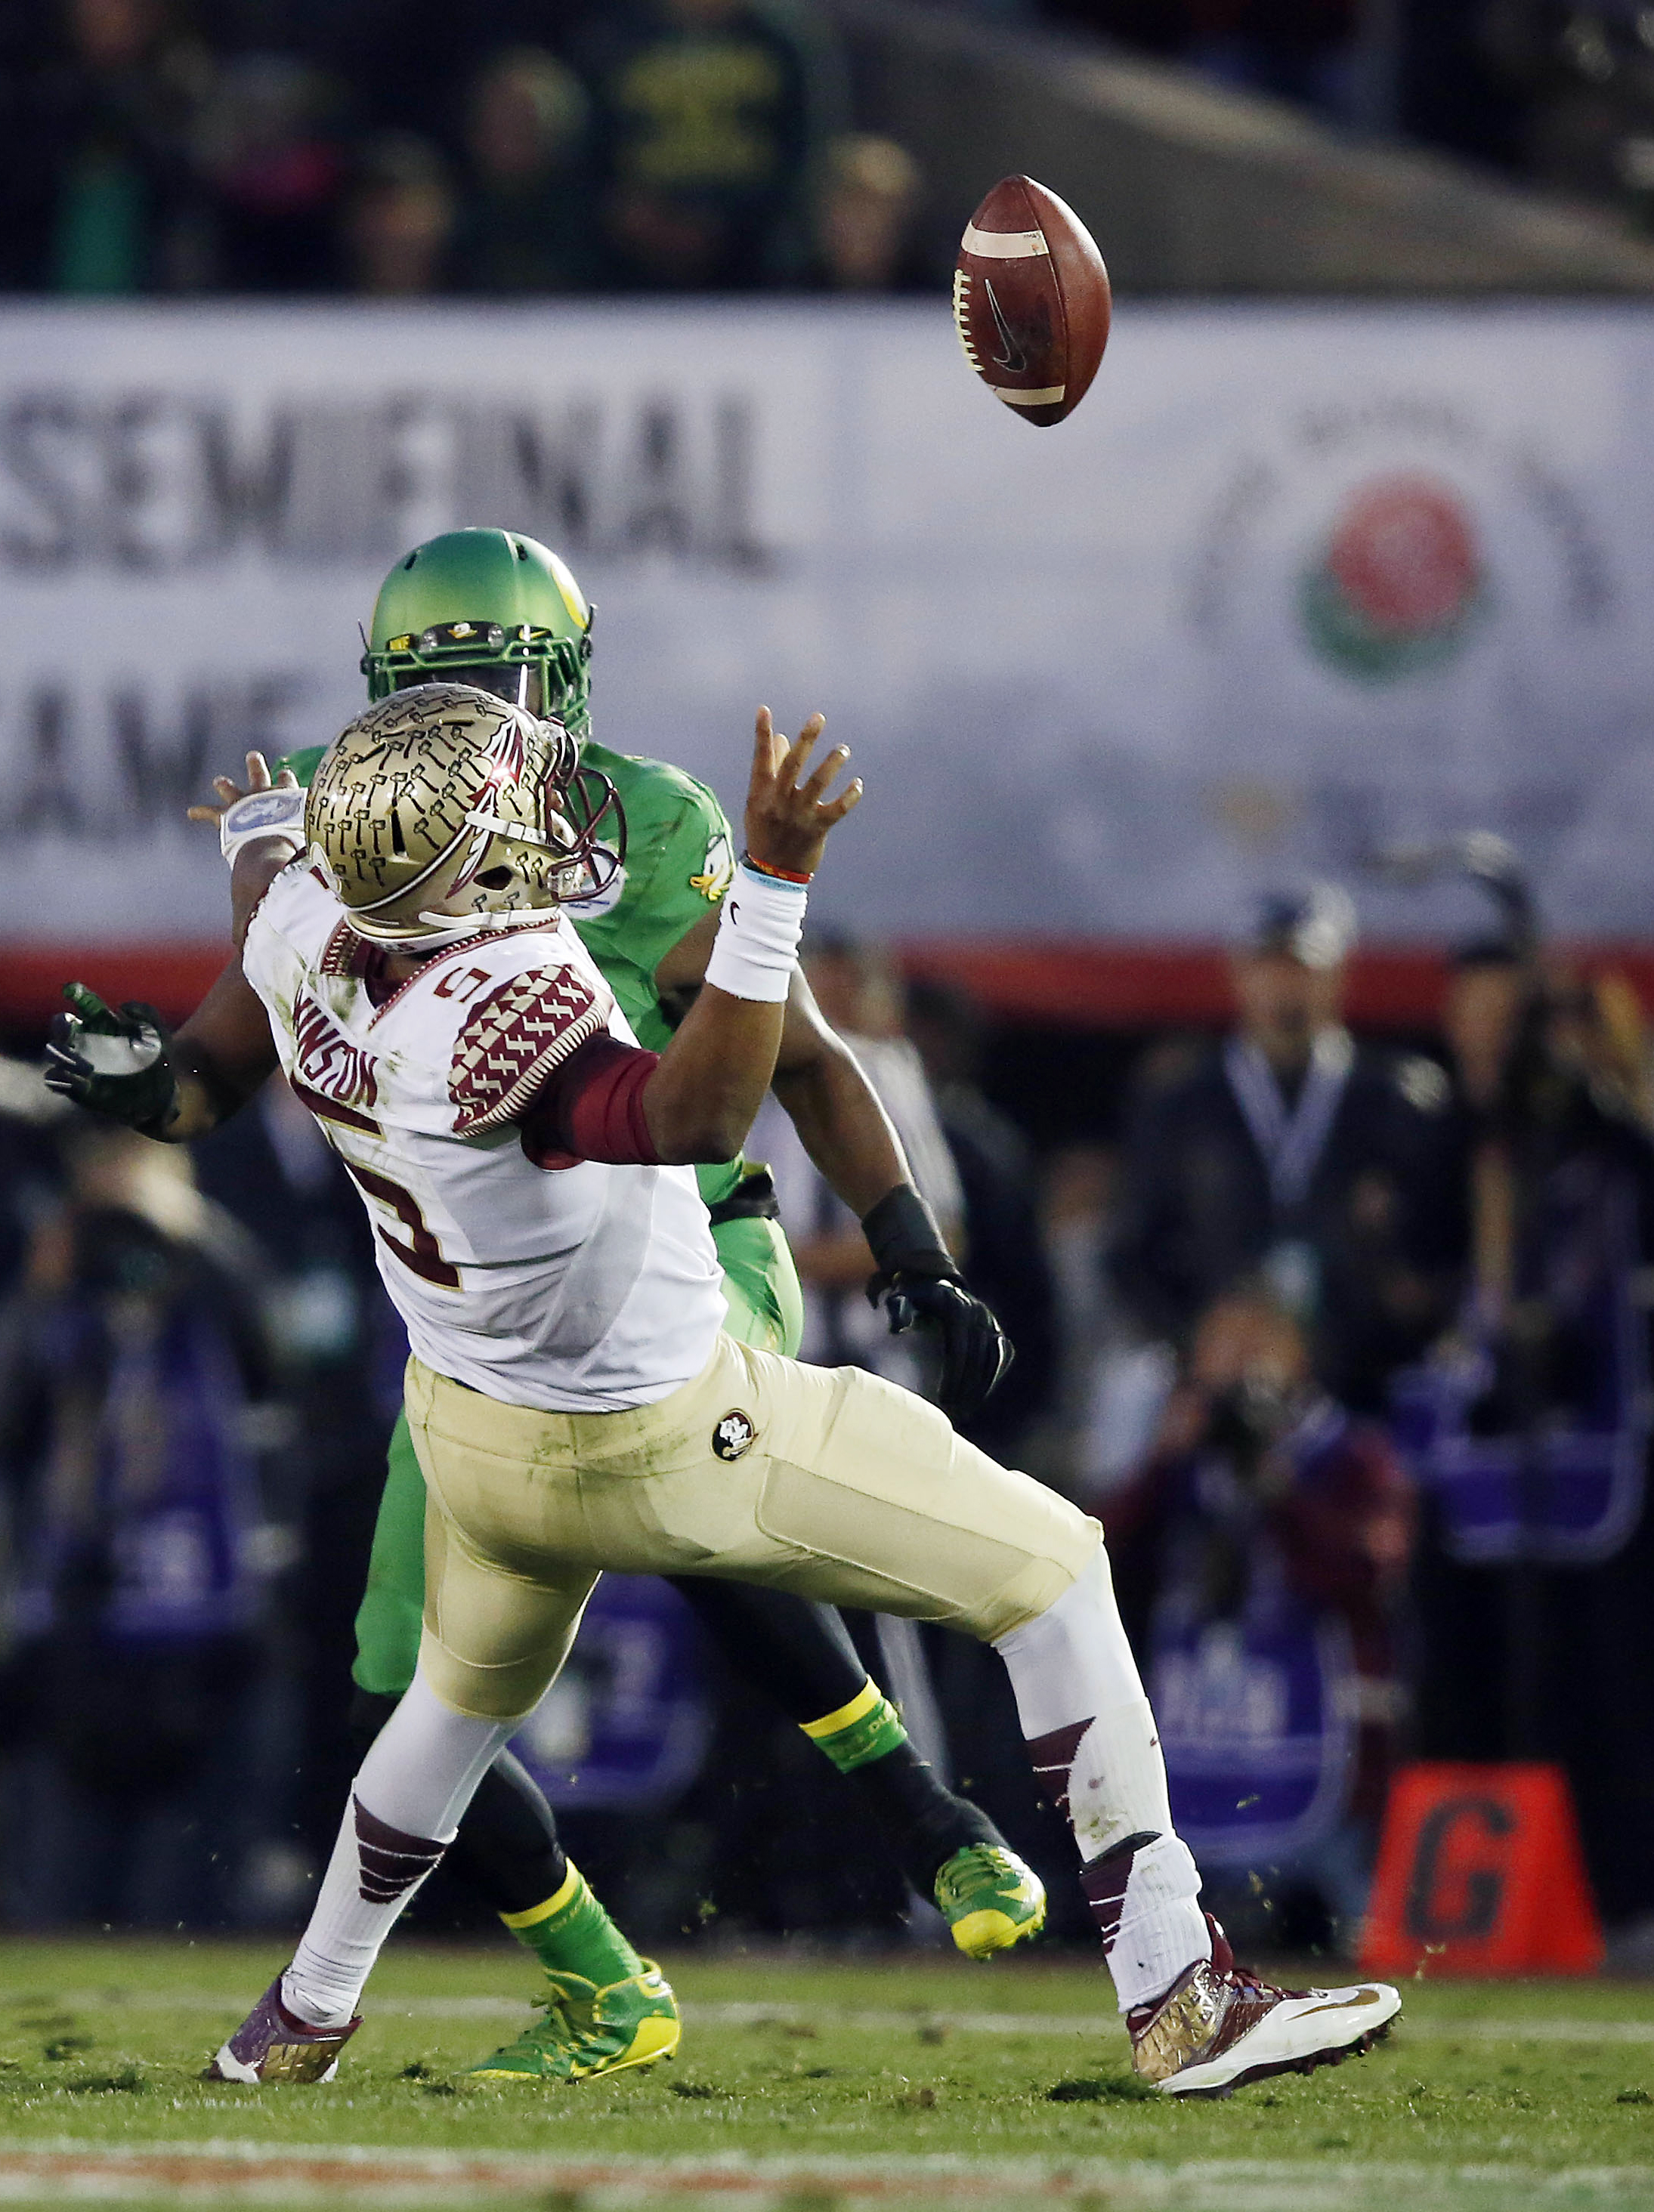 Oregon linebacker Tony Washington (91) forces a fumble by Florida State quarterback Jameis Winston (5), and then returned the ball for a touchdown in the Rose Bowl NCAA college football playoff semifinal, Thursday, Jan. 1, 2015 in Pasadena, Calif. Oregon won 59-20. (AP Photo/Doug Benc)